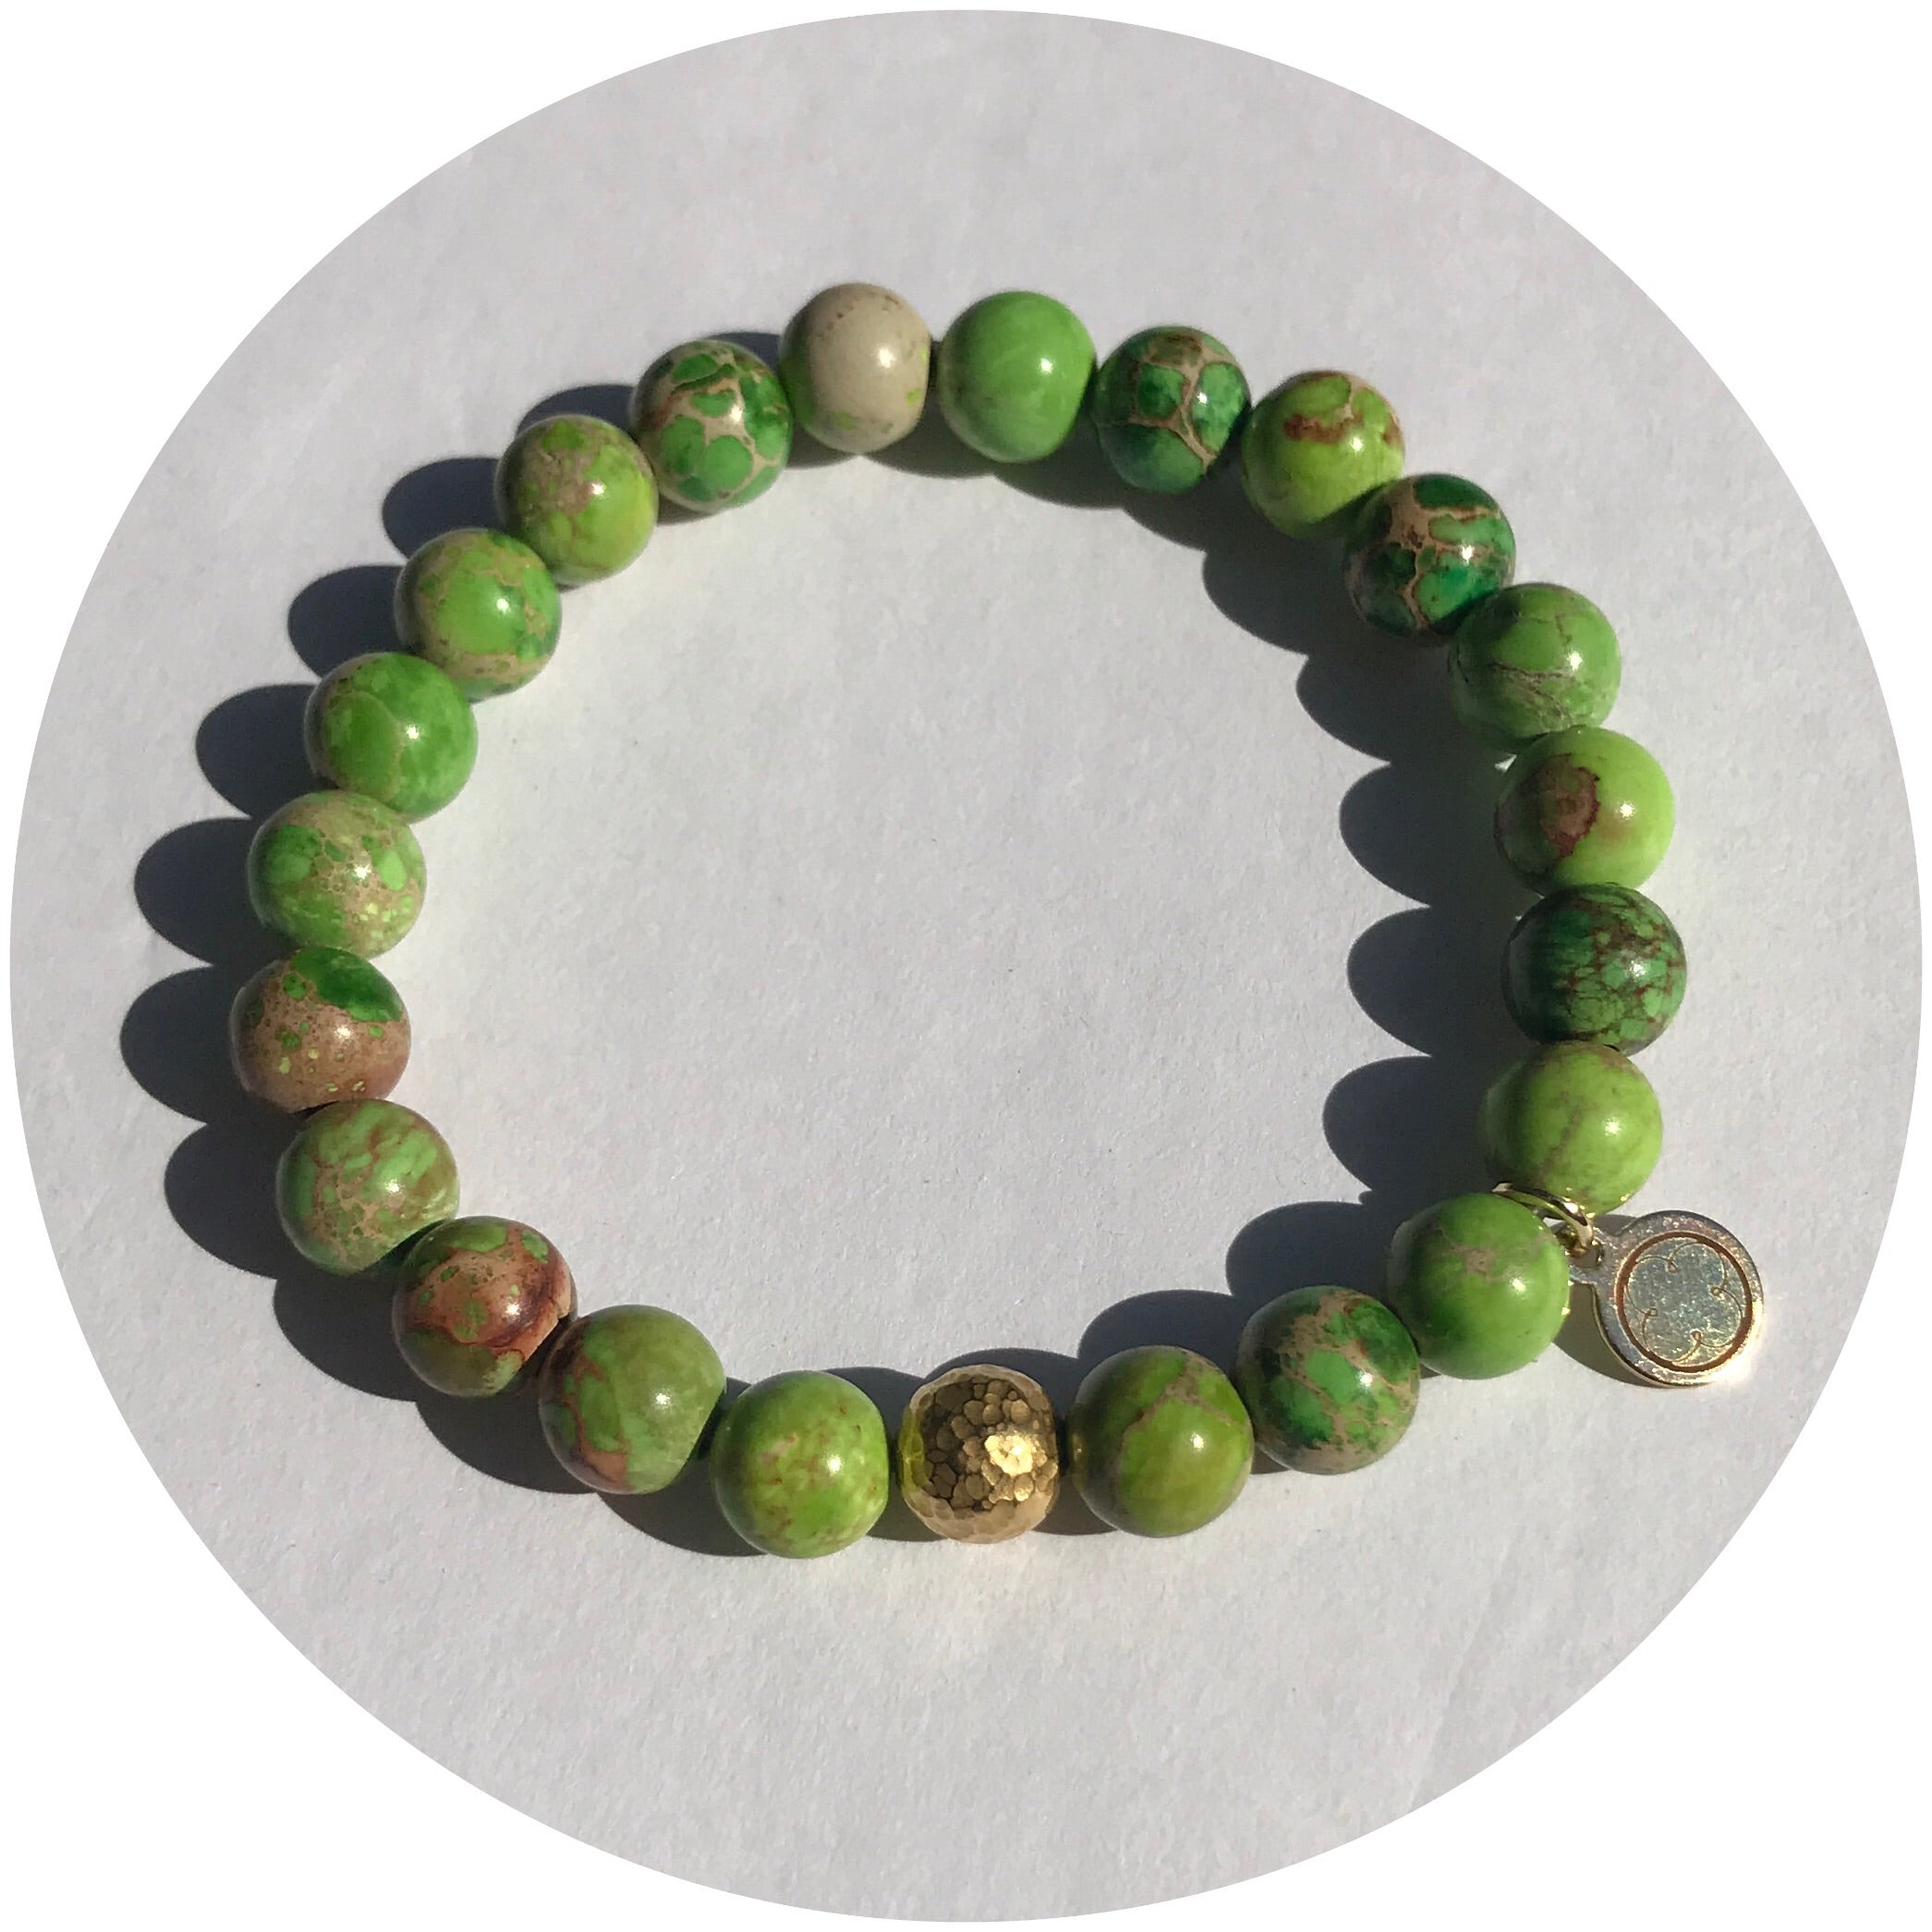 Green Imperial Jasper with Hammered Gold Accent